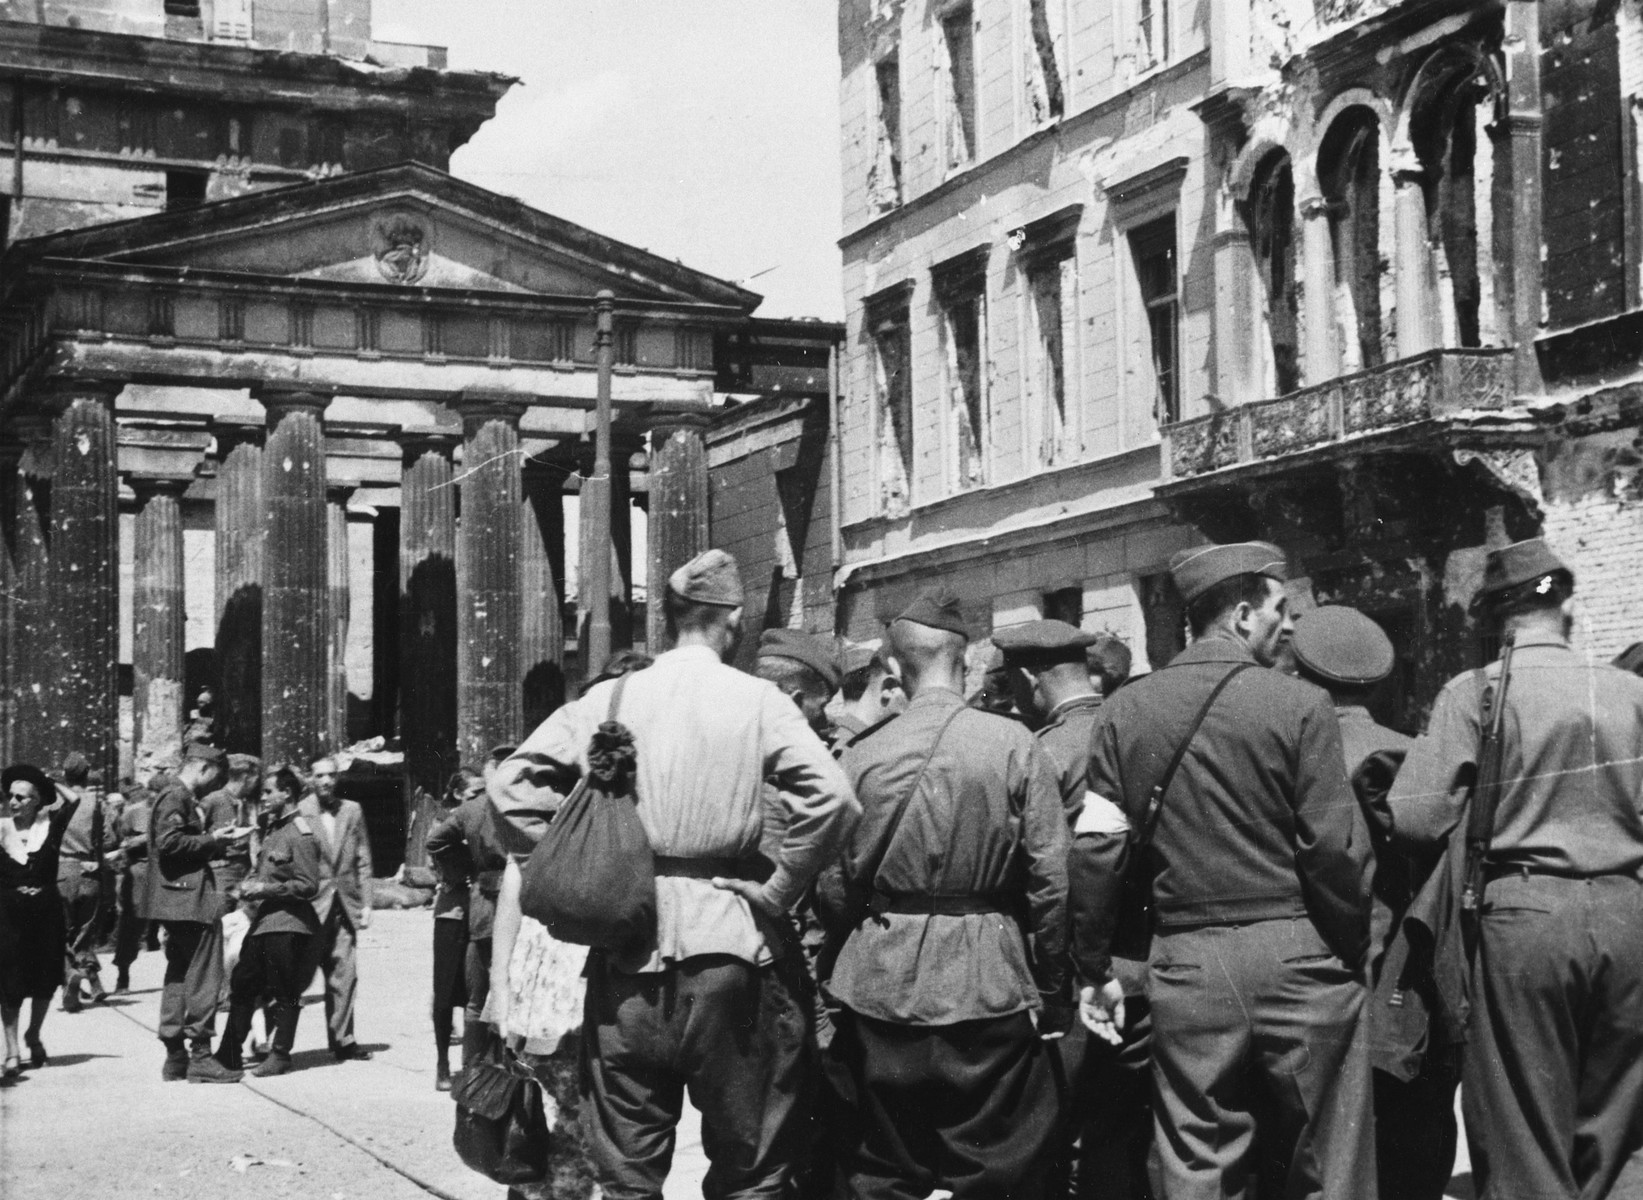 Soviet soldiers gather on a street in Berlin shortly after its capture.